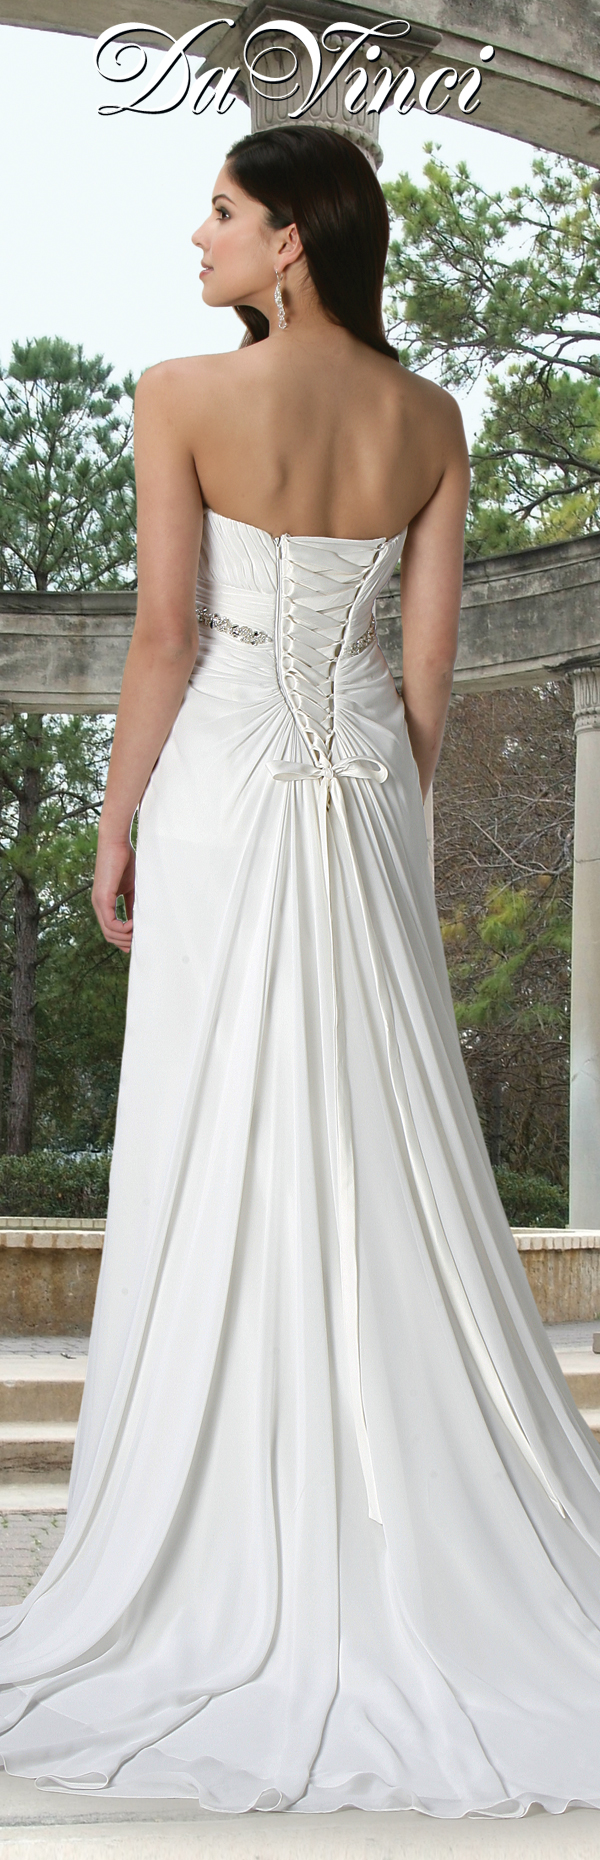 Davinci bridal style chiffon gown with an empire waist and